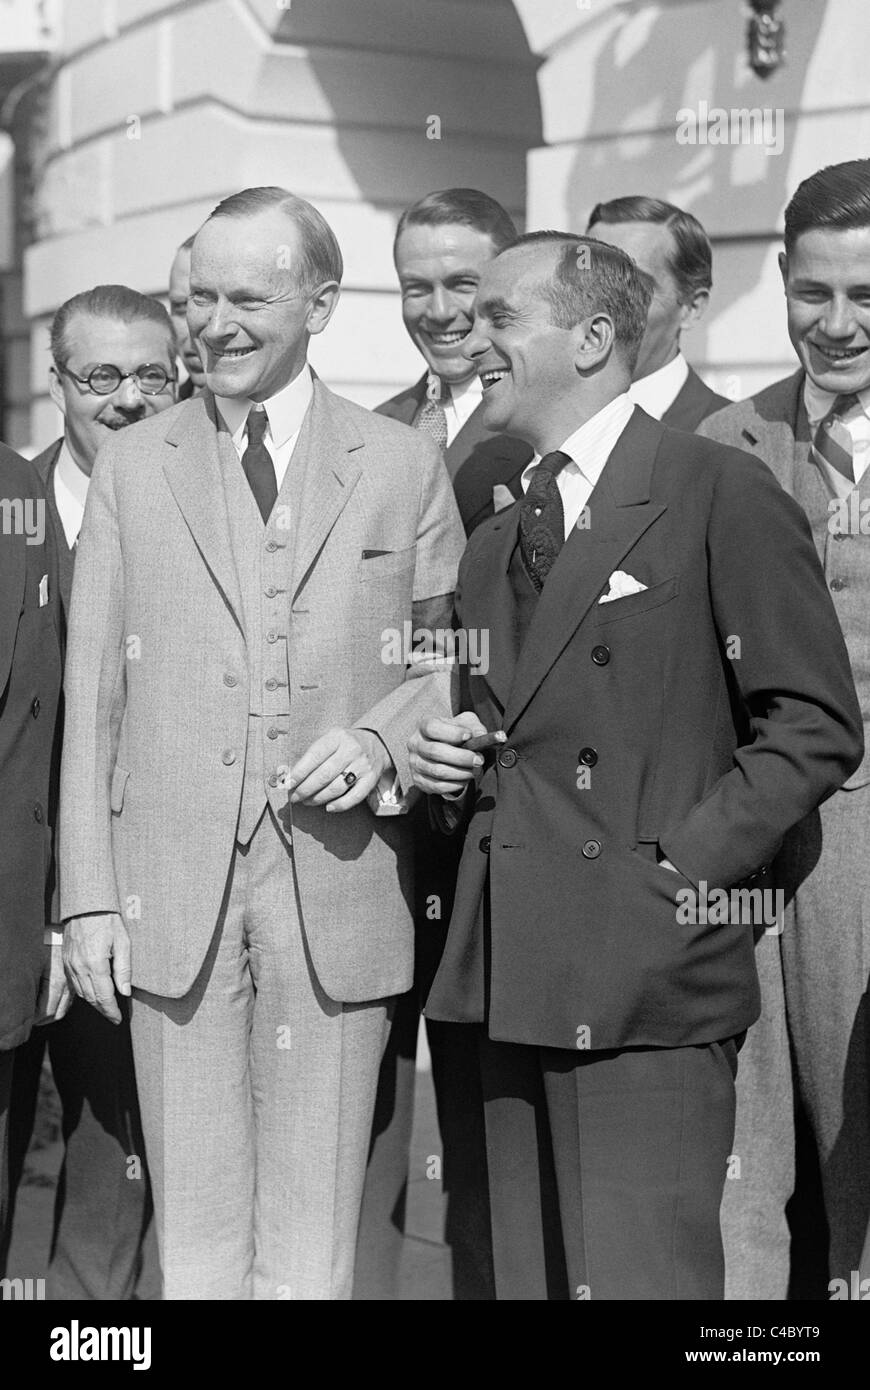 Vintage photo of US President Calvin Coolidge (left) and entertainer Al Jolson (right) outside the White House in - Stock Image